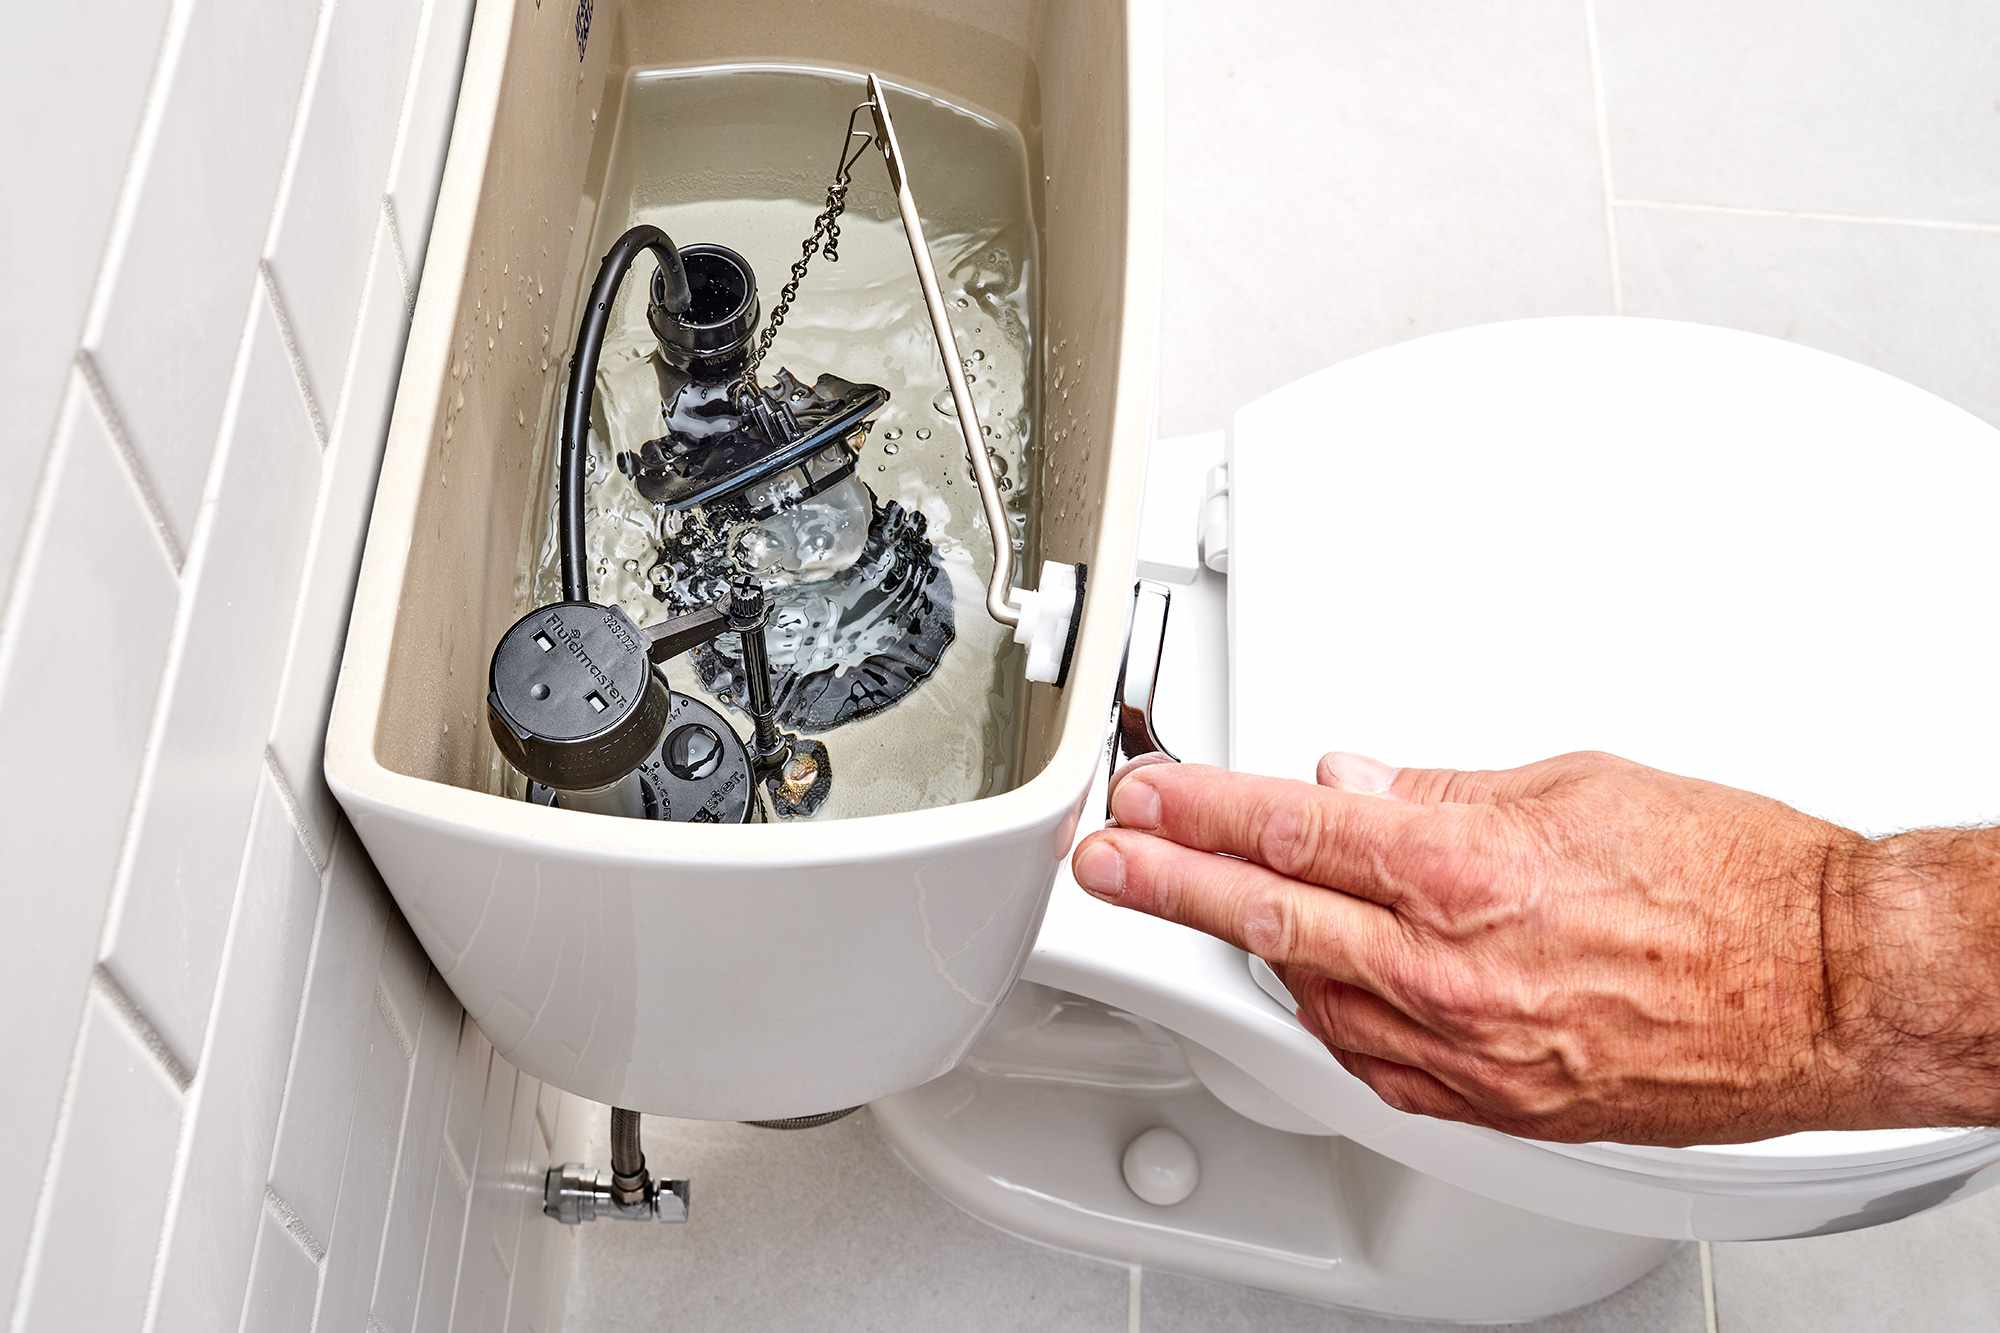 Toilet tank refilled with water with handle pushed down to check fill valve